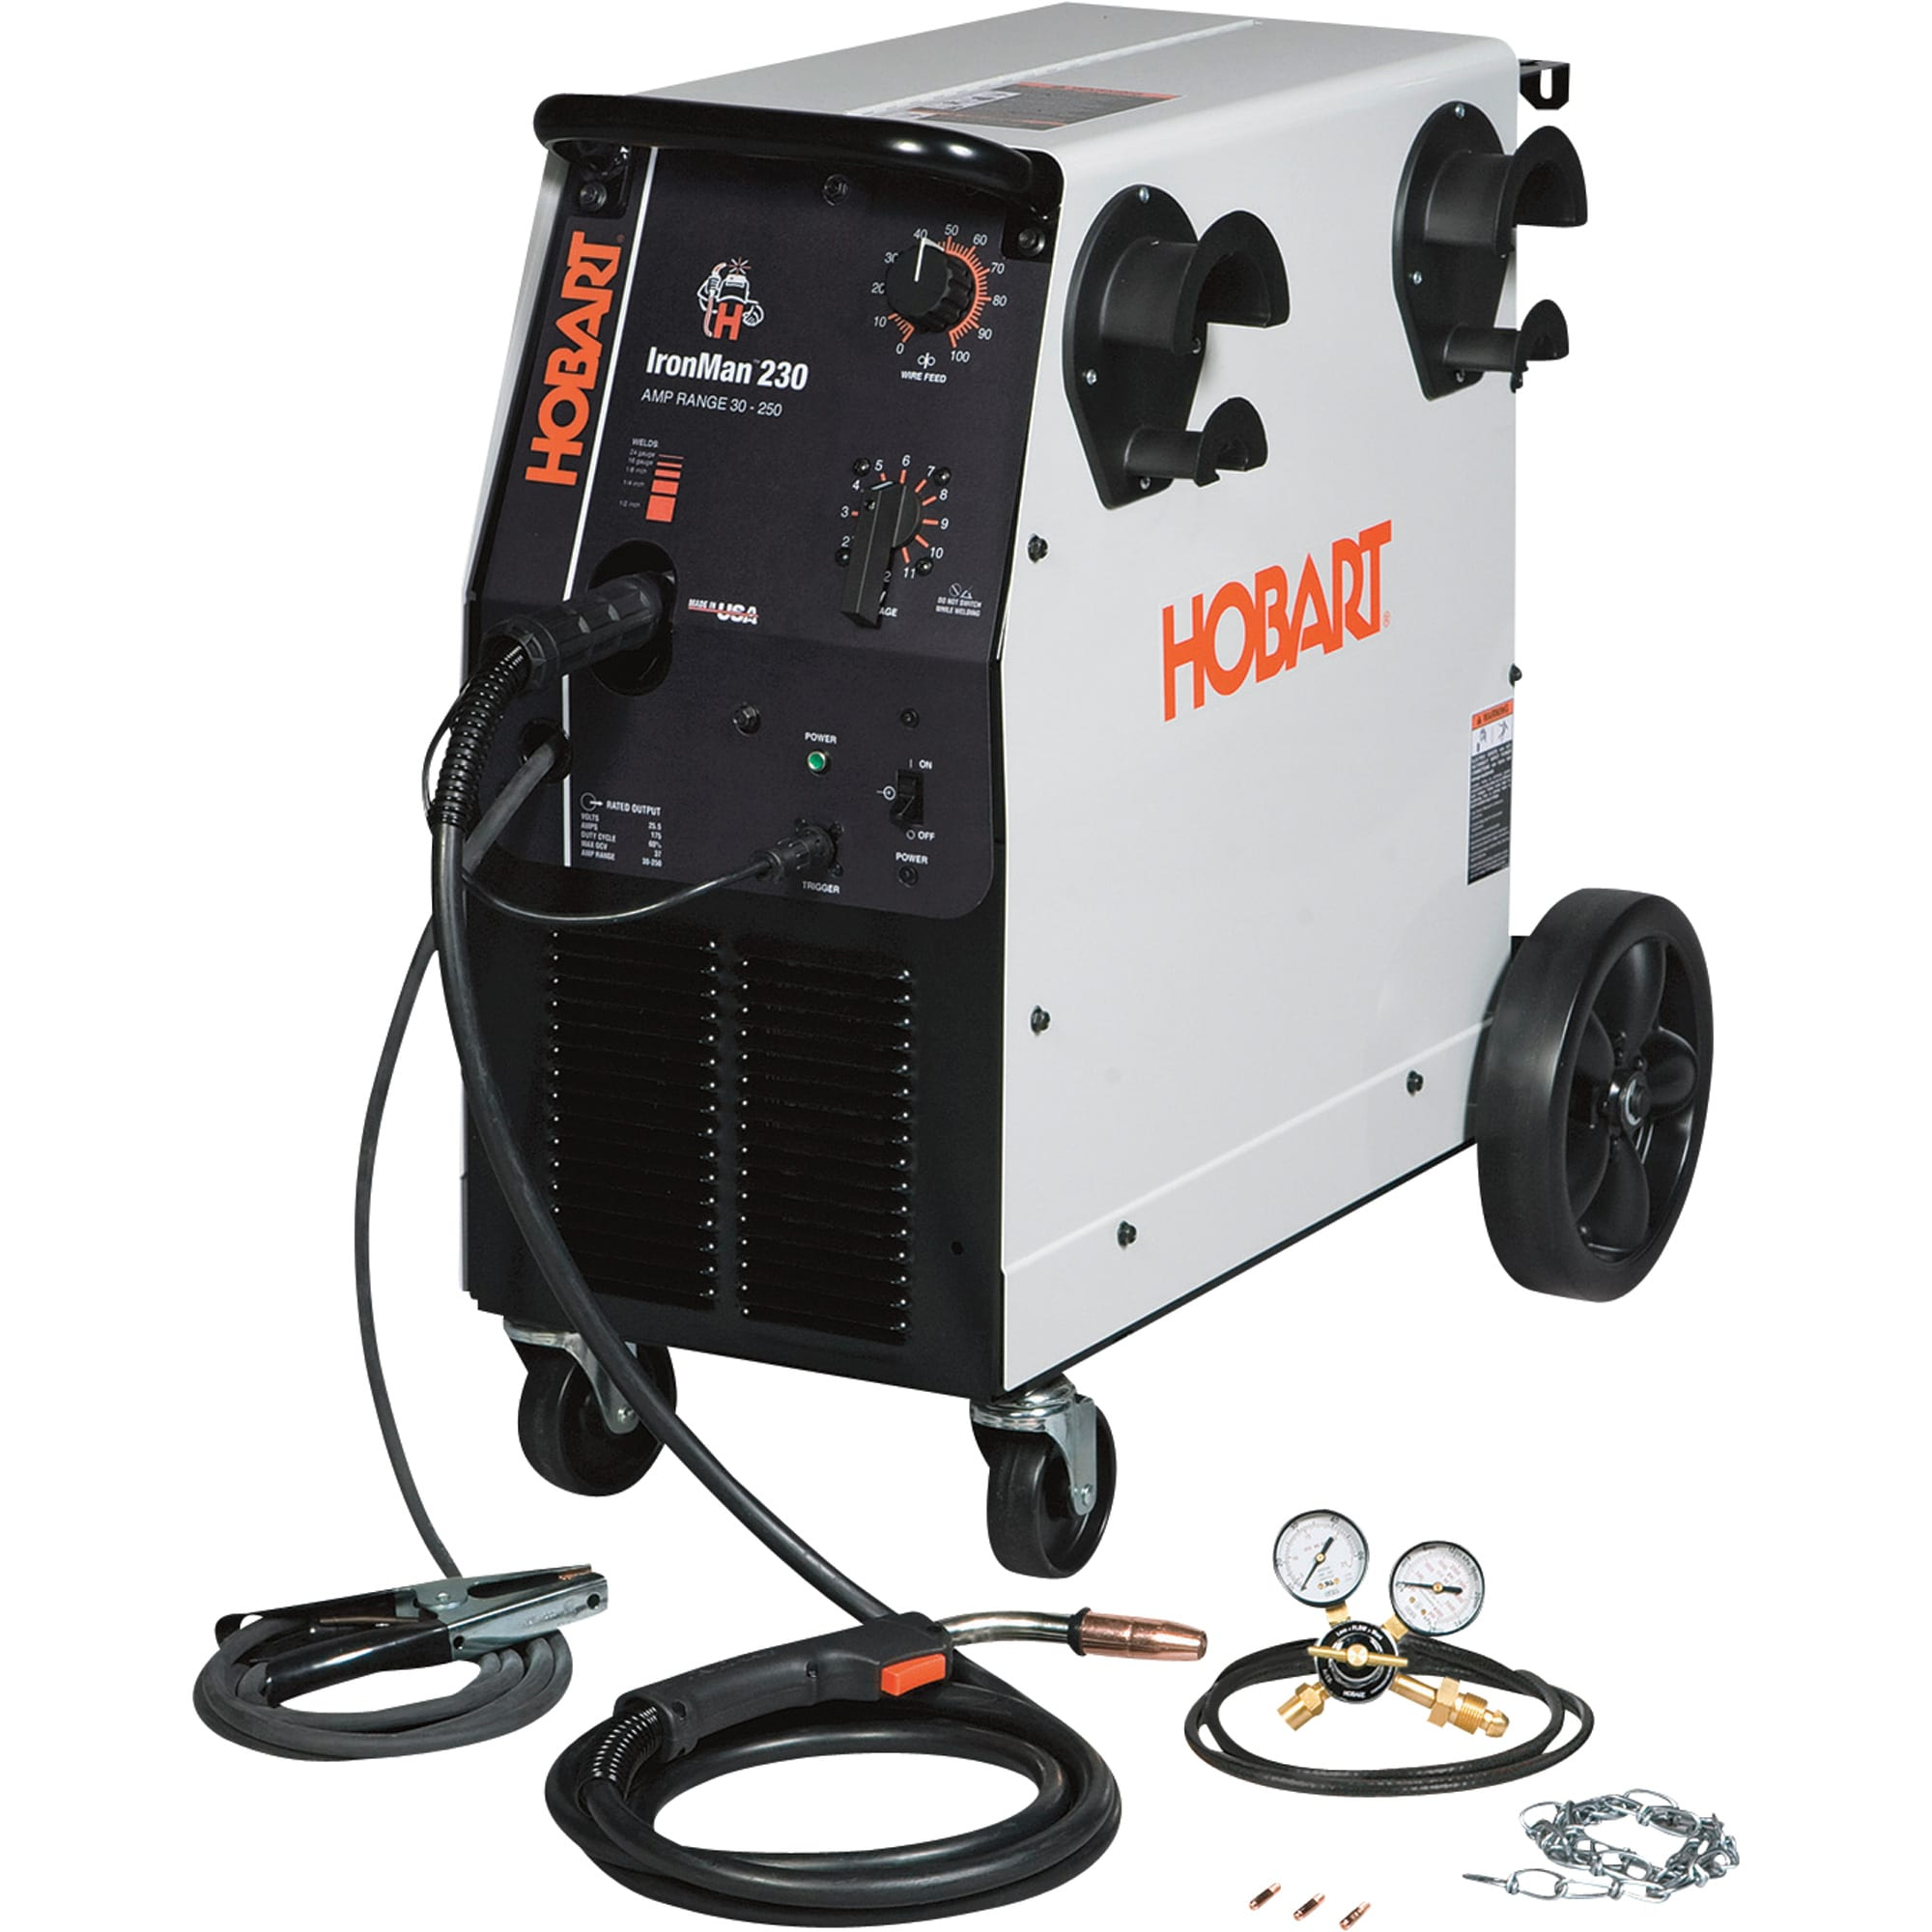 Hobart Ironman 230 MIG Welder Reviews 2 make a hobby your profession with the best welder with hobart hobart beta mig 250 wiring diagrams at crackthecode.co